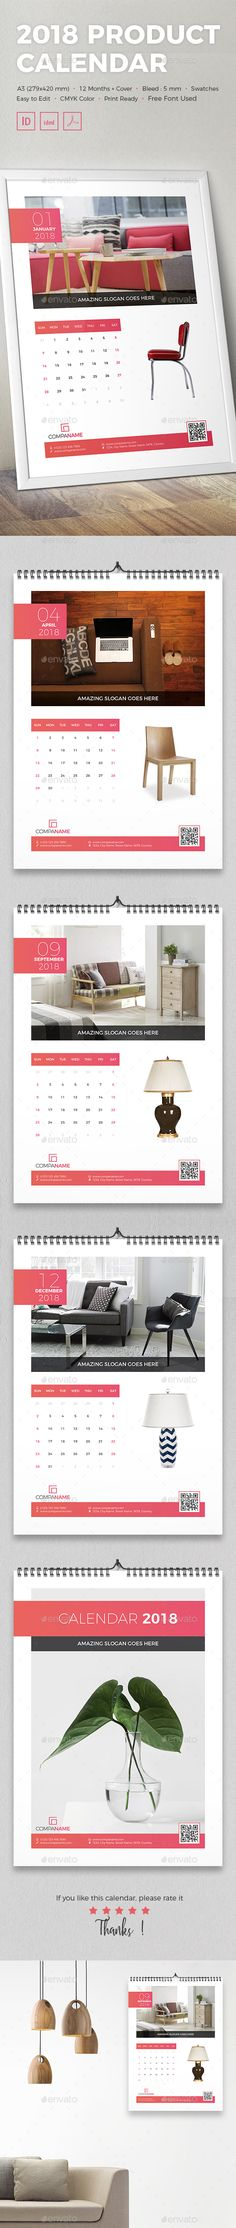 2018 Product #Calendar - Calendars #Stationery